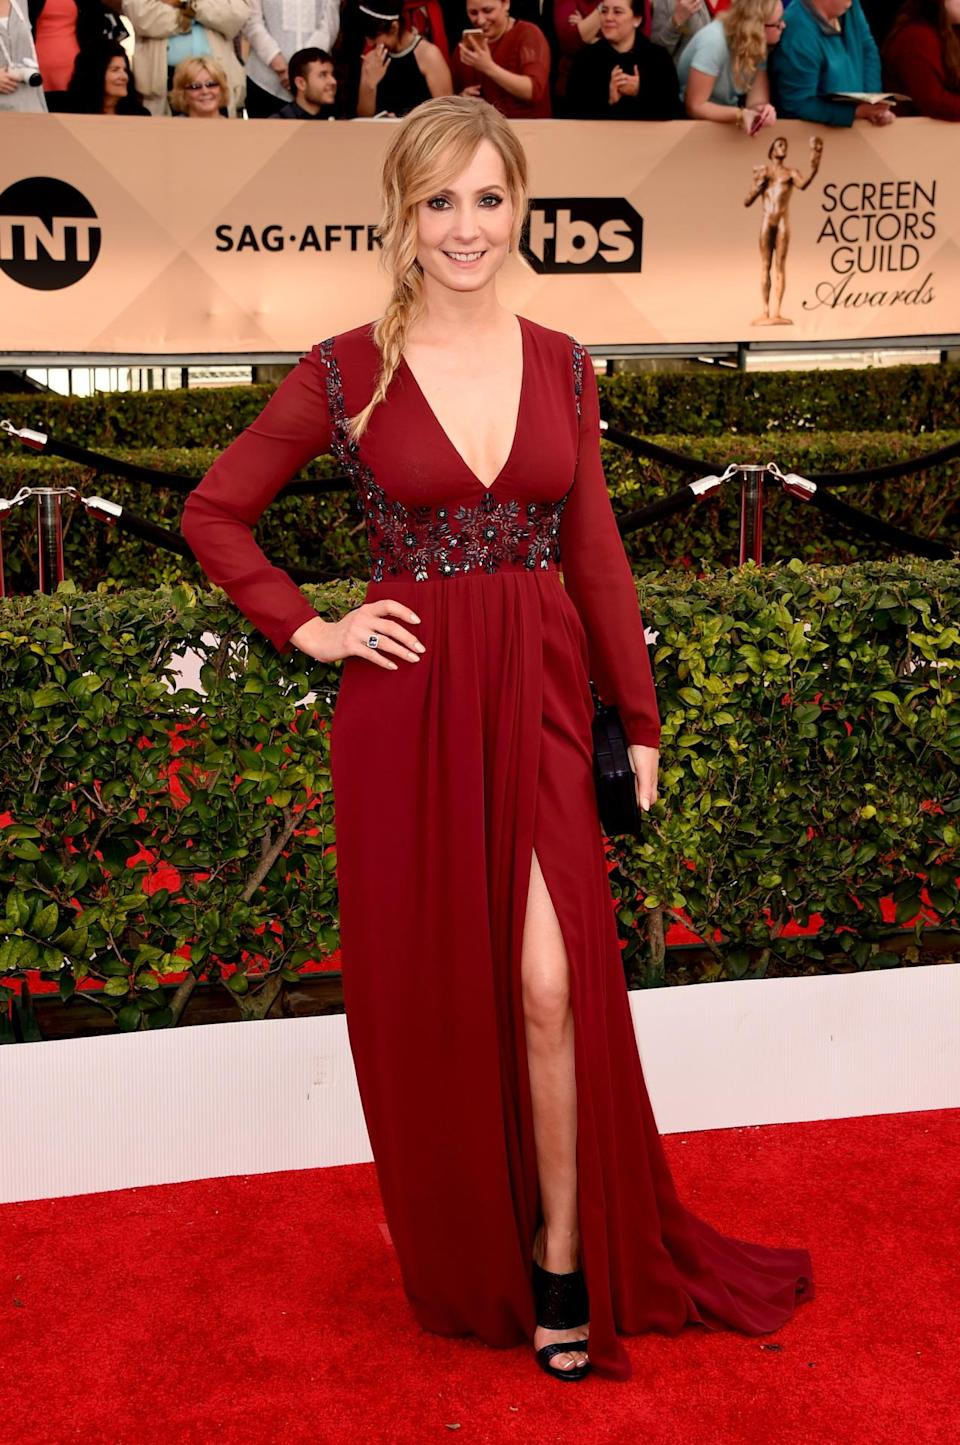 <p>Joanne Froggatt, a member of <i>Downton Abbey's </i>assembly cast, opted for a long sleeve dress in a deep red. The bodice was embellished with beading and she showed some skin with a deep V and thigh slit. <i>Photo: Getty Images</i></p>